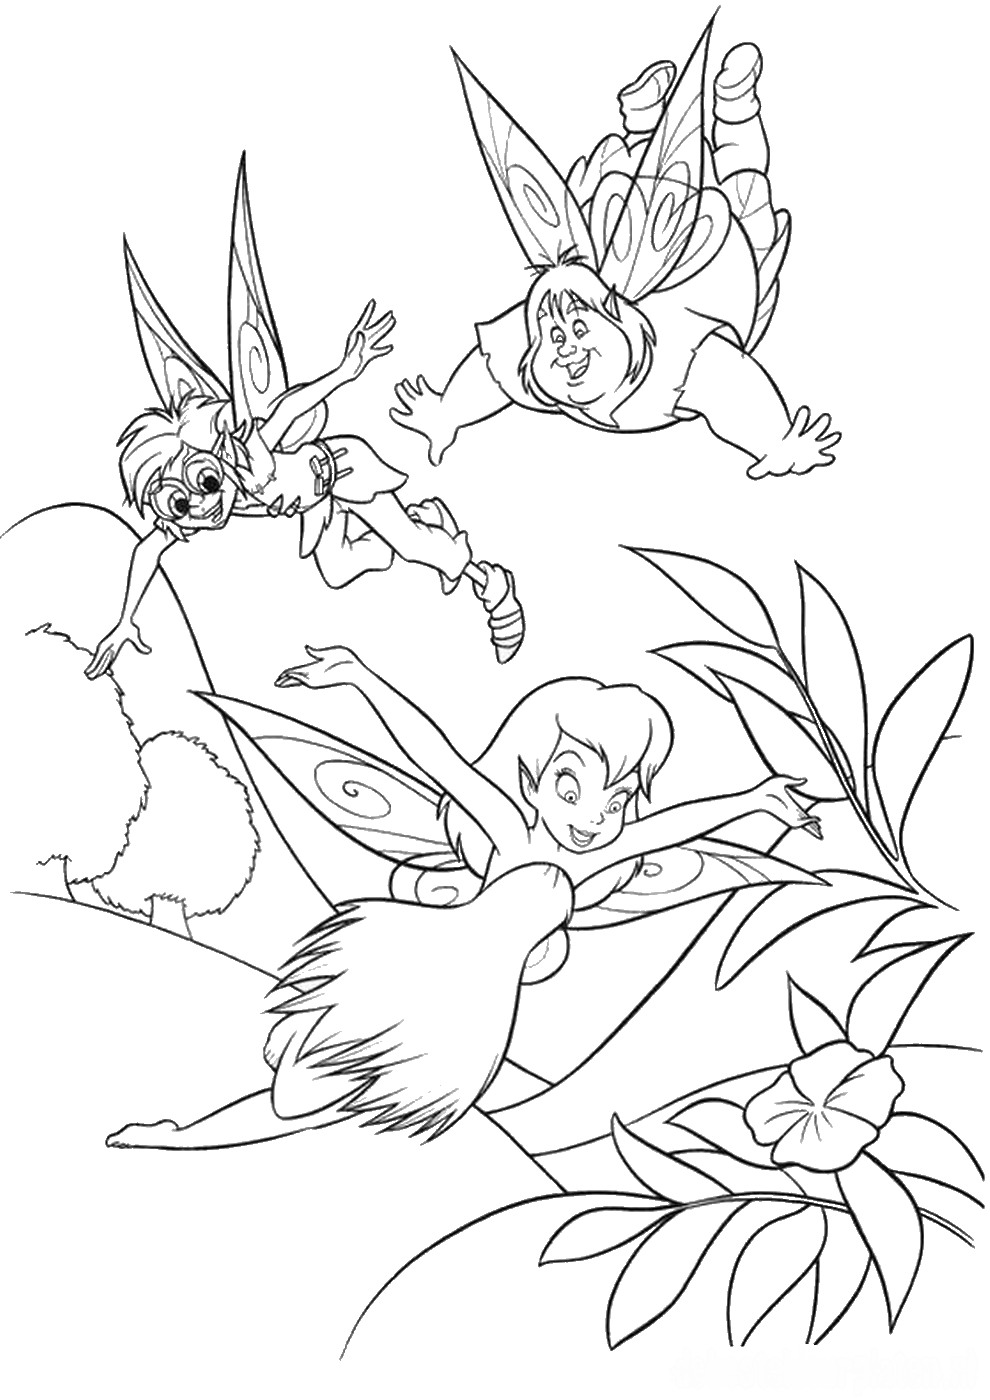 tinkerbell colouring in 30 tinkerbell coloring pages free coloring pages free colouring tinkerbell in